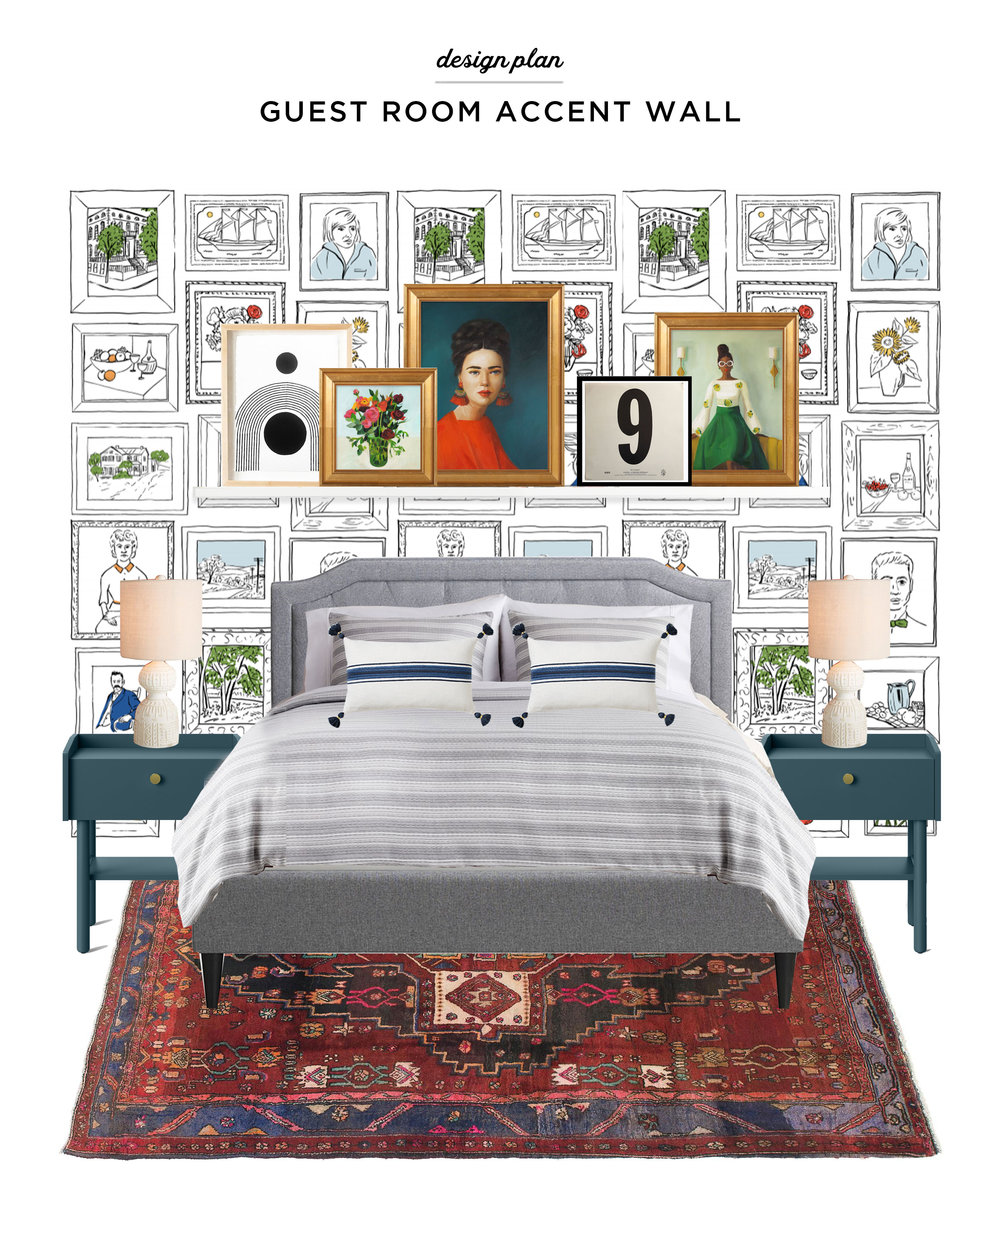 guest-room-accent-wall-plan.jpg